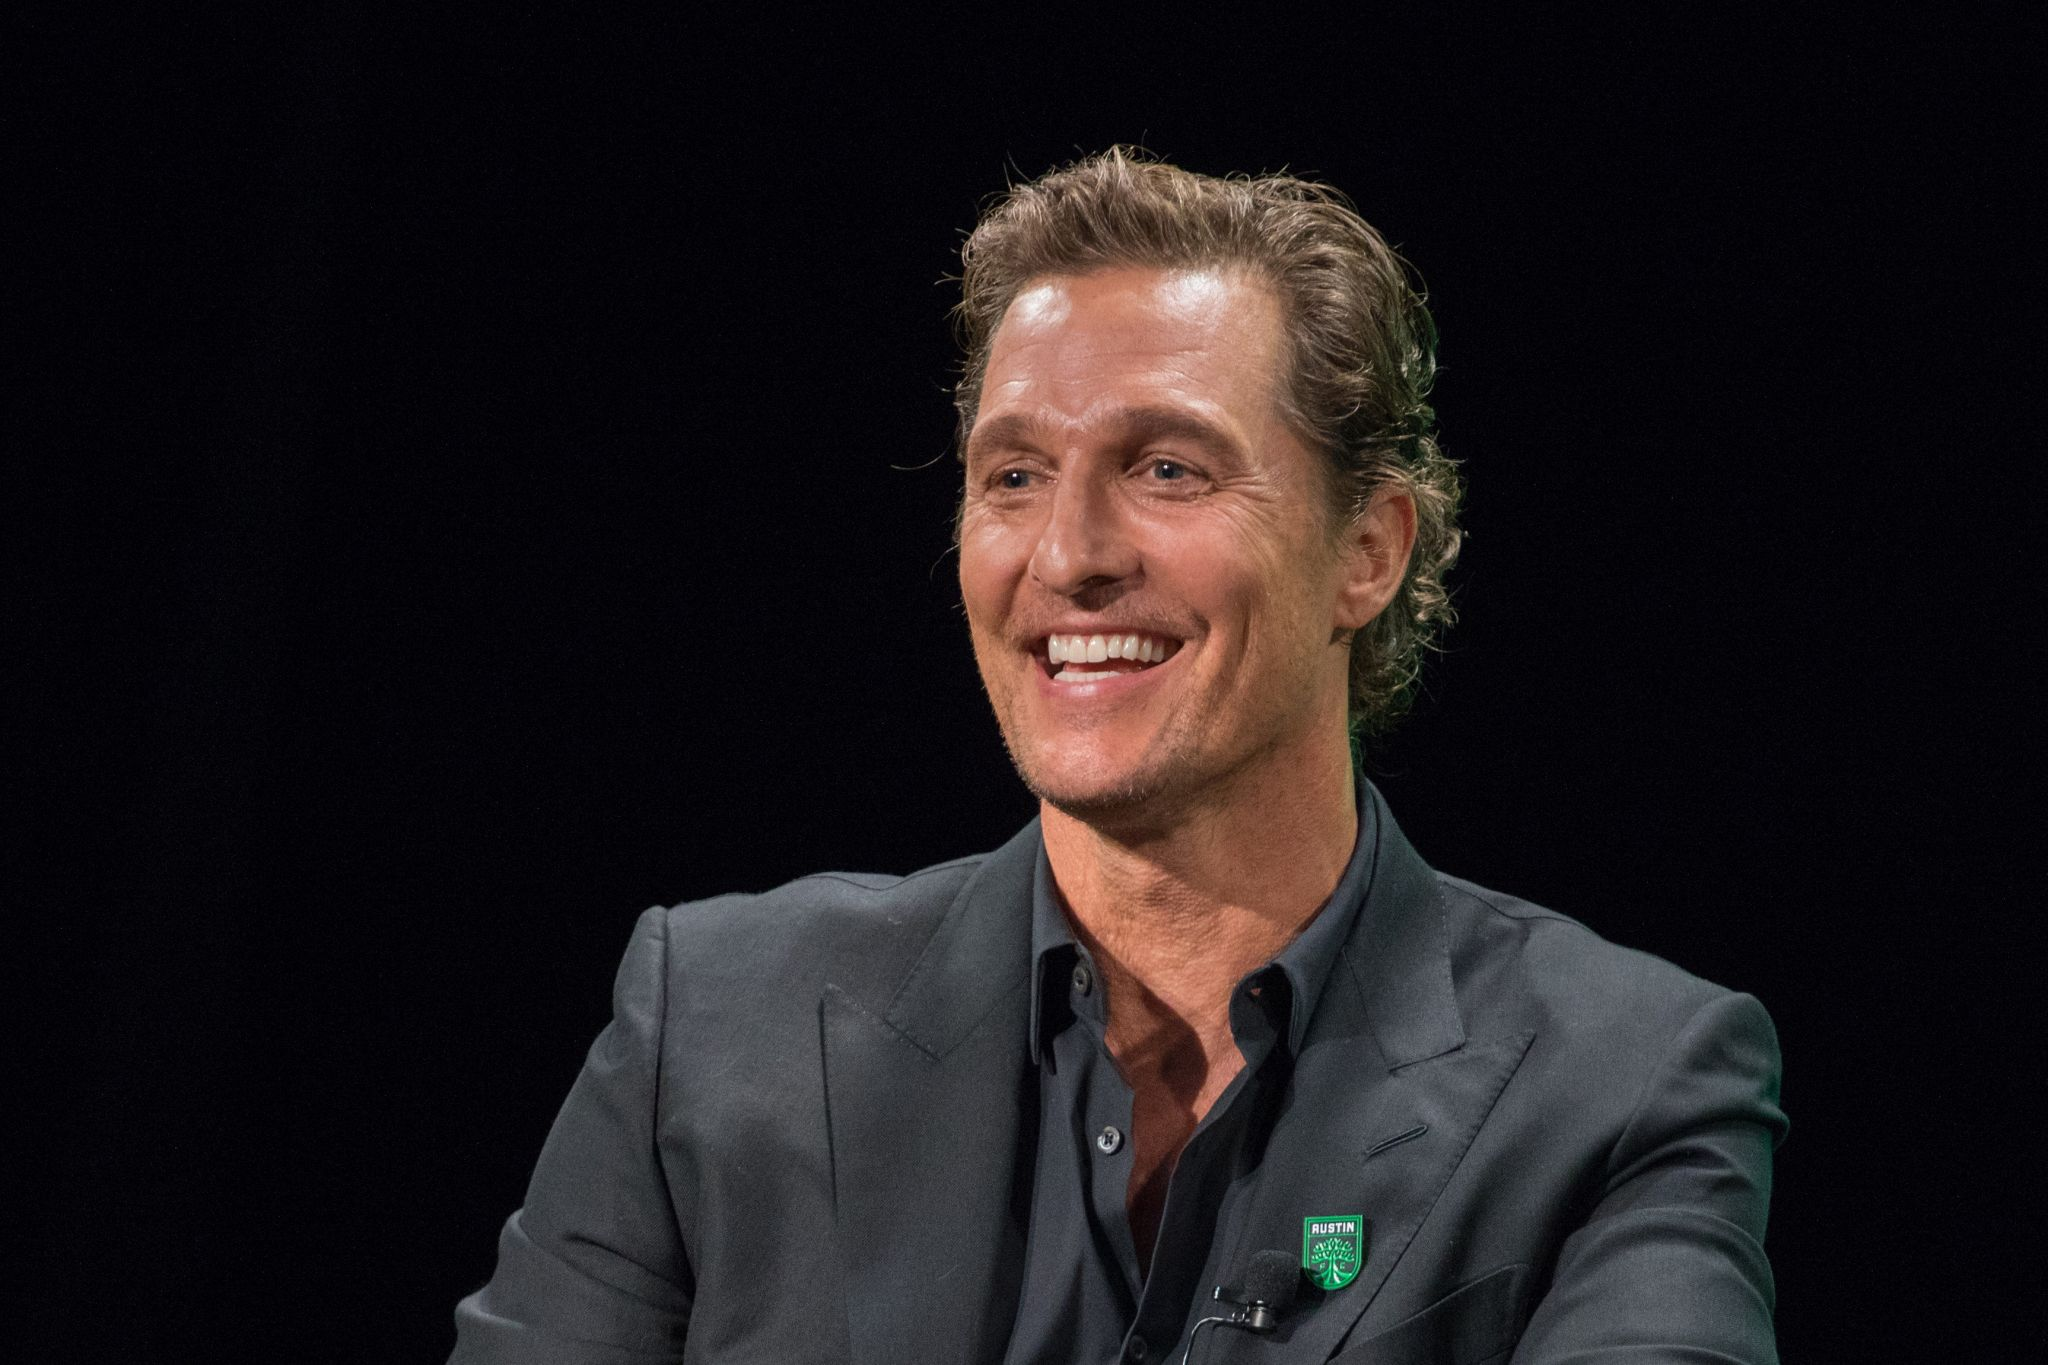 Matthew McConaughey heads to the Texas Panhandle as voice of 'Hank the Cowdog' in podcast series